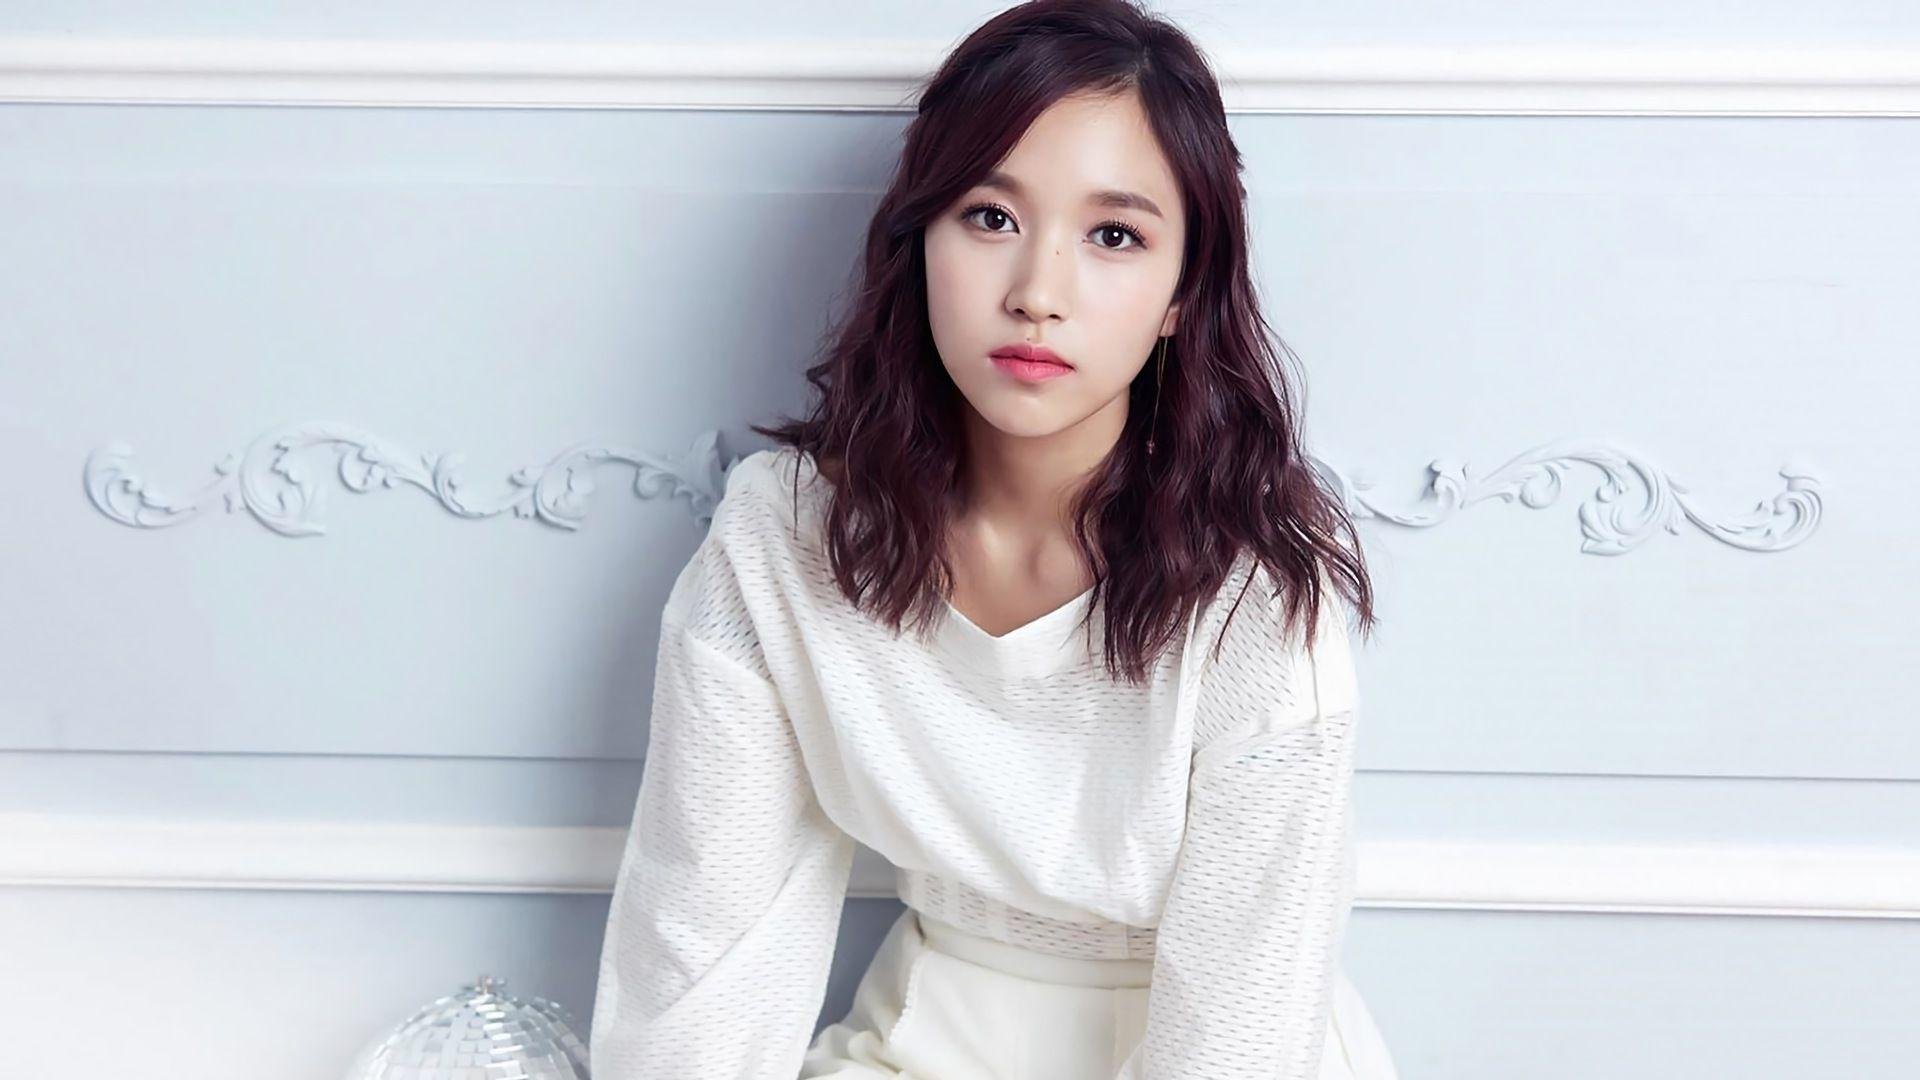 1080p Twice Mina Desktop Wallpaper